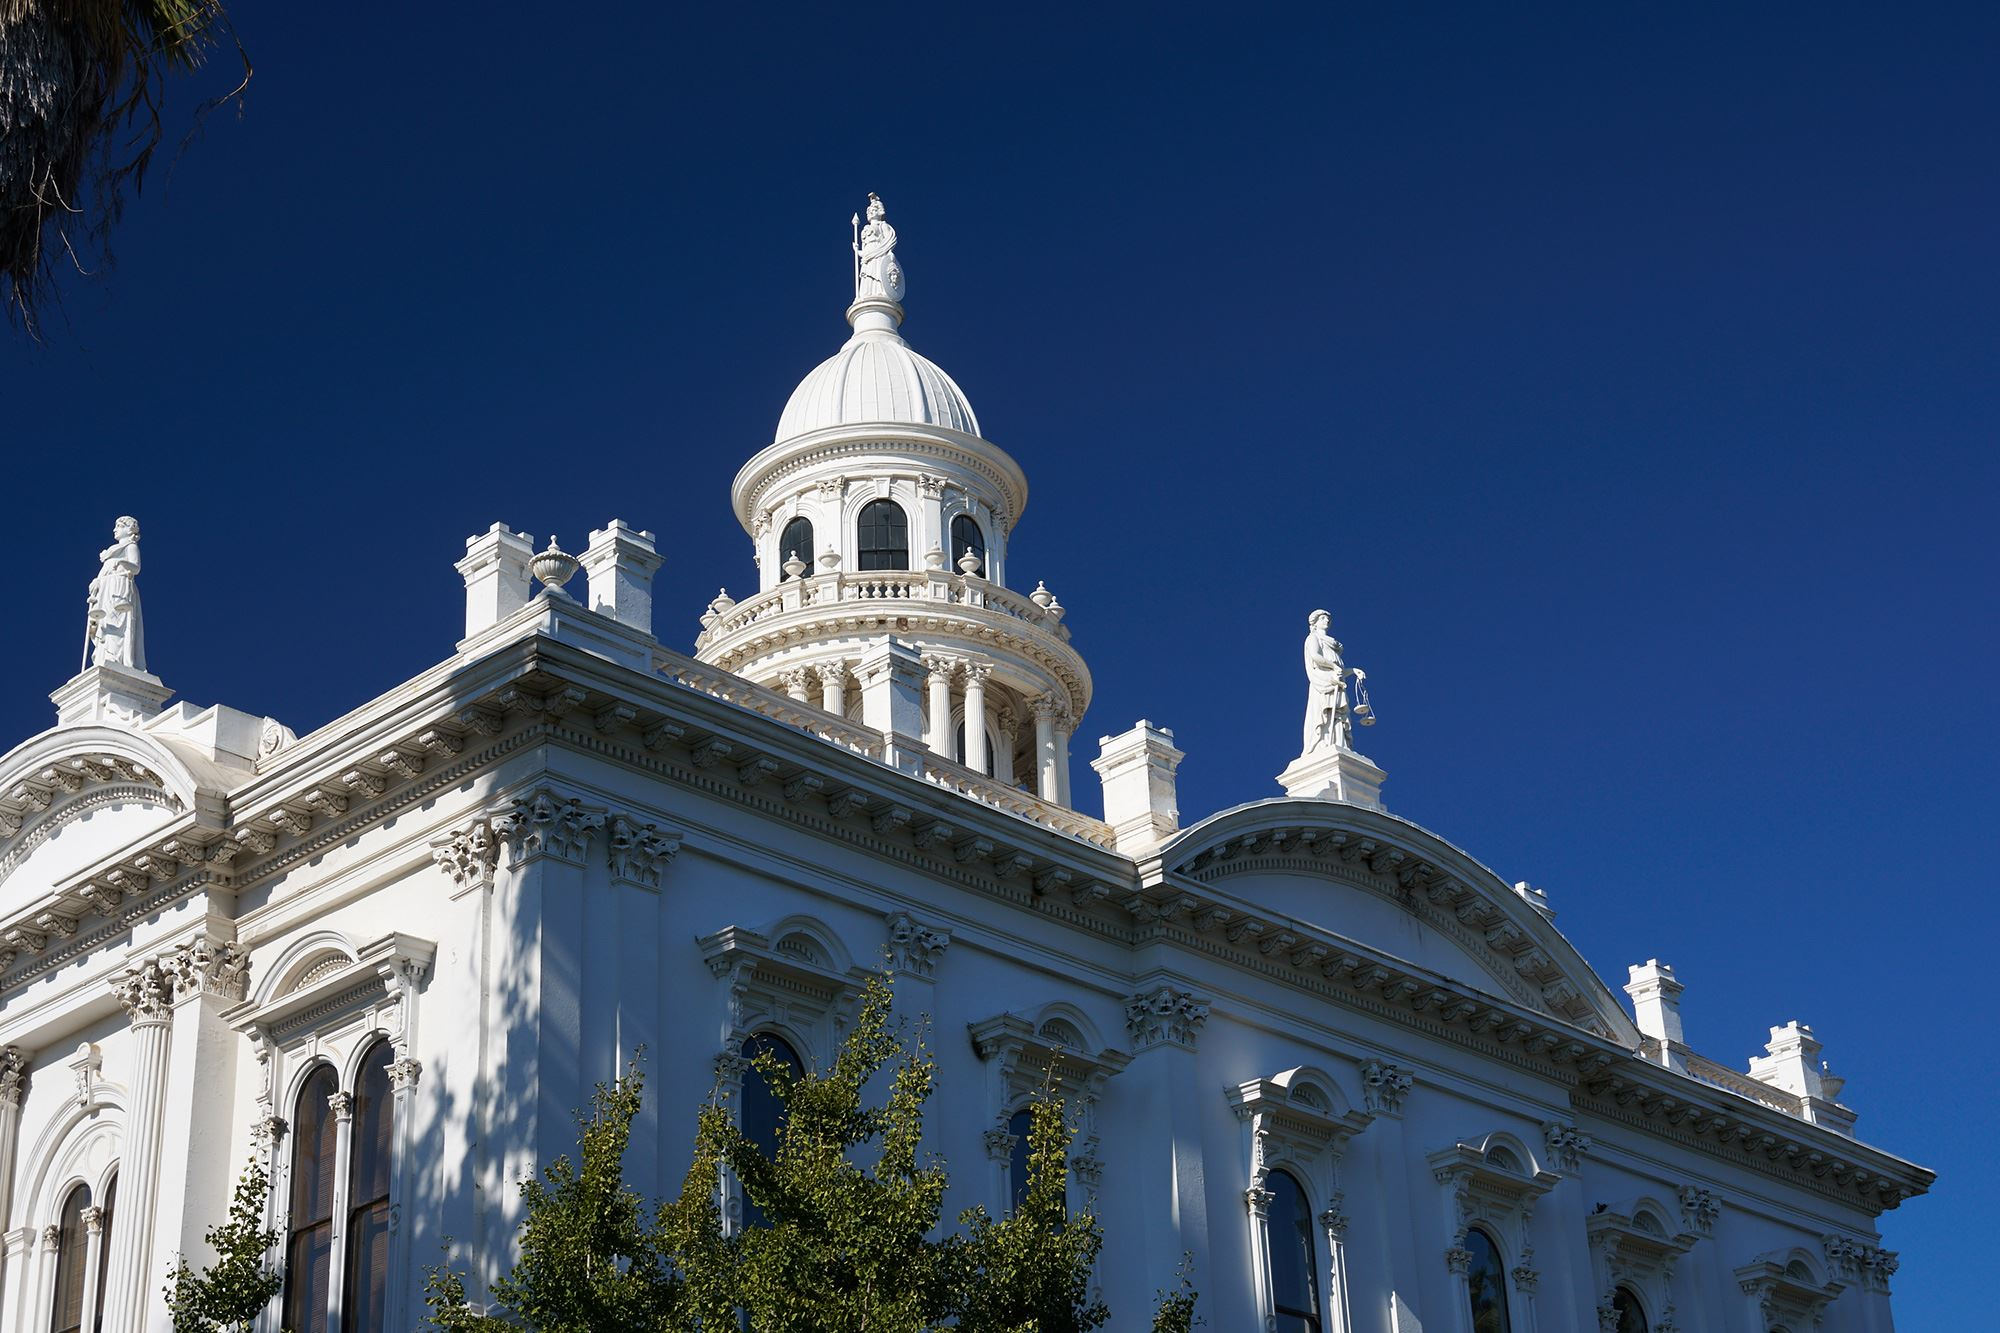 Merced Courthouse